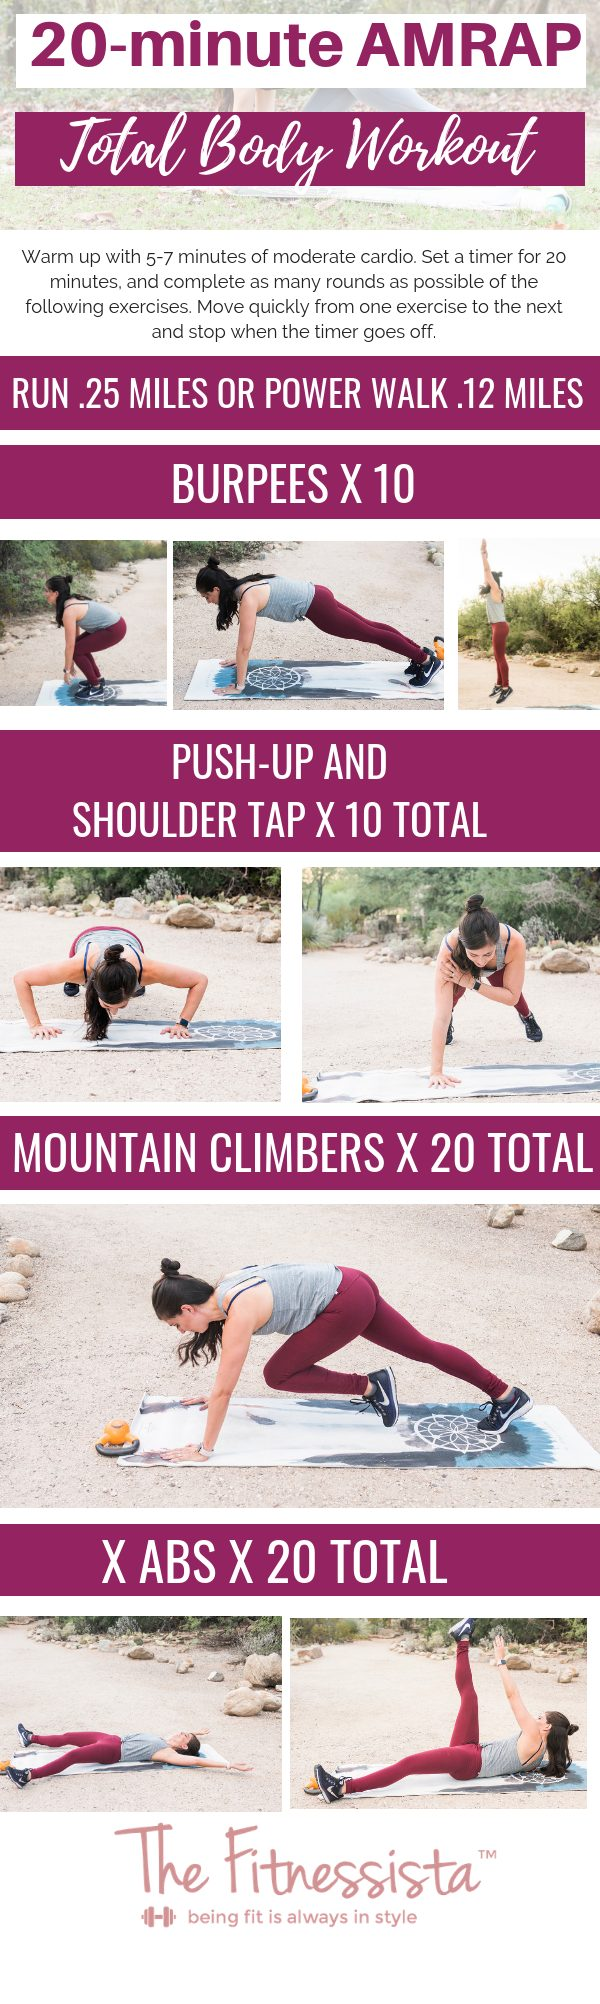 20 minute AMRAP workout you can do anywhere with your own bodyweight. All the details and form cues: fitnessista.com